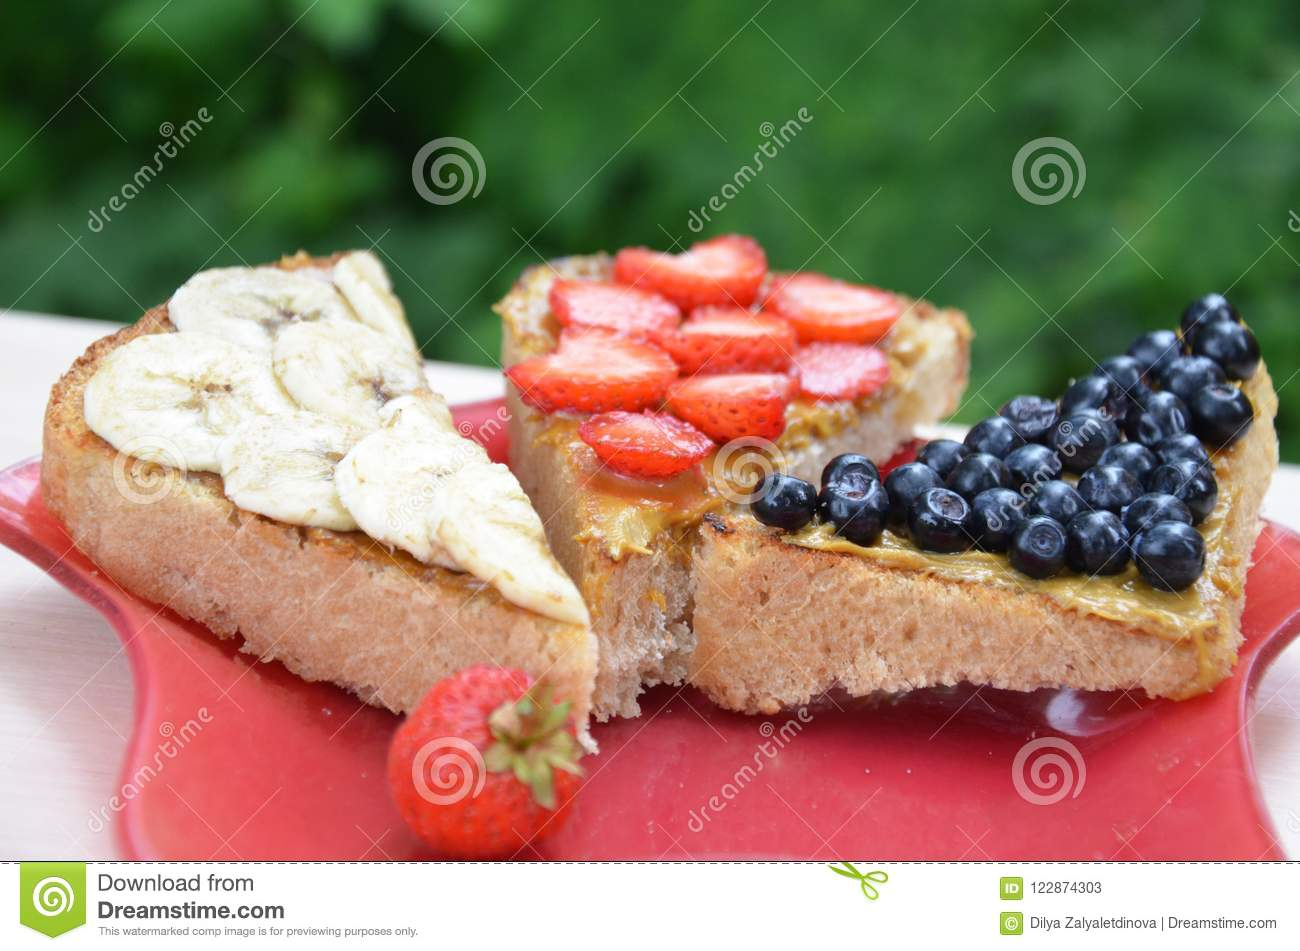 sandwich with strawberry blueberries and peanut butter on a red plate. top view of a sandwich on a background of green foliage in